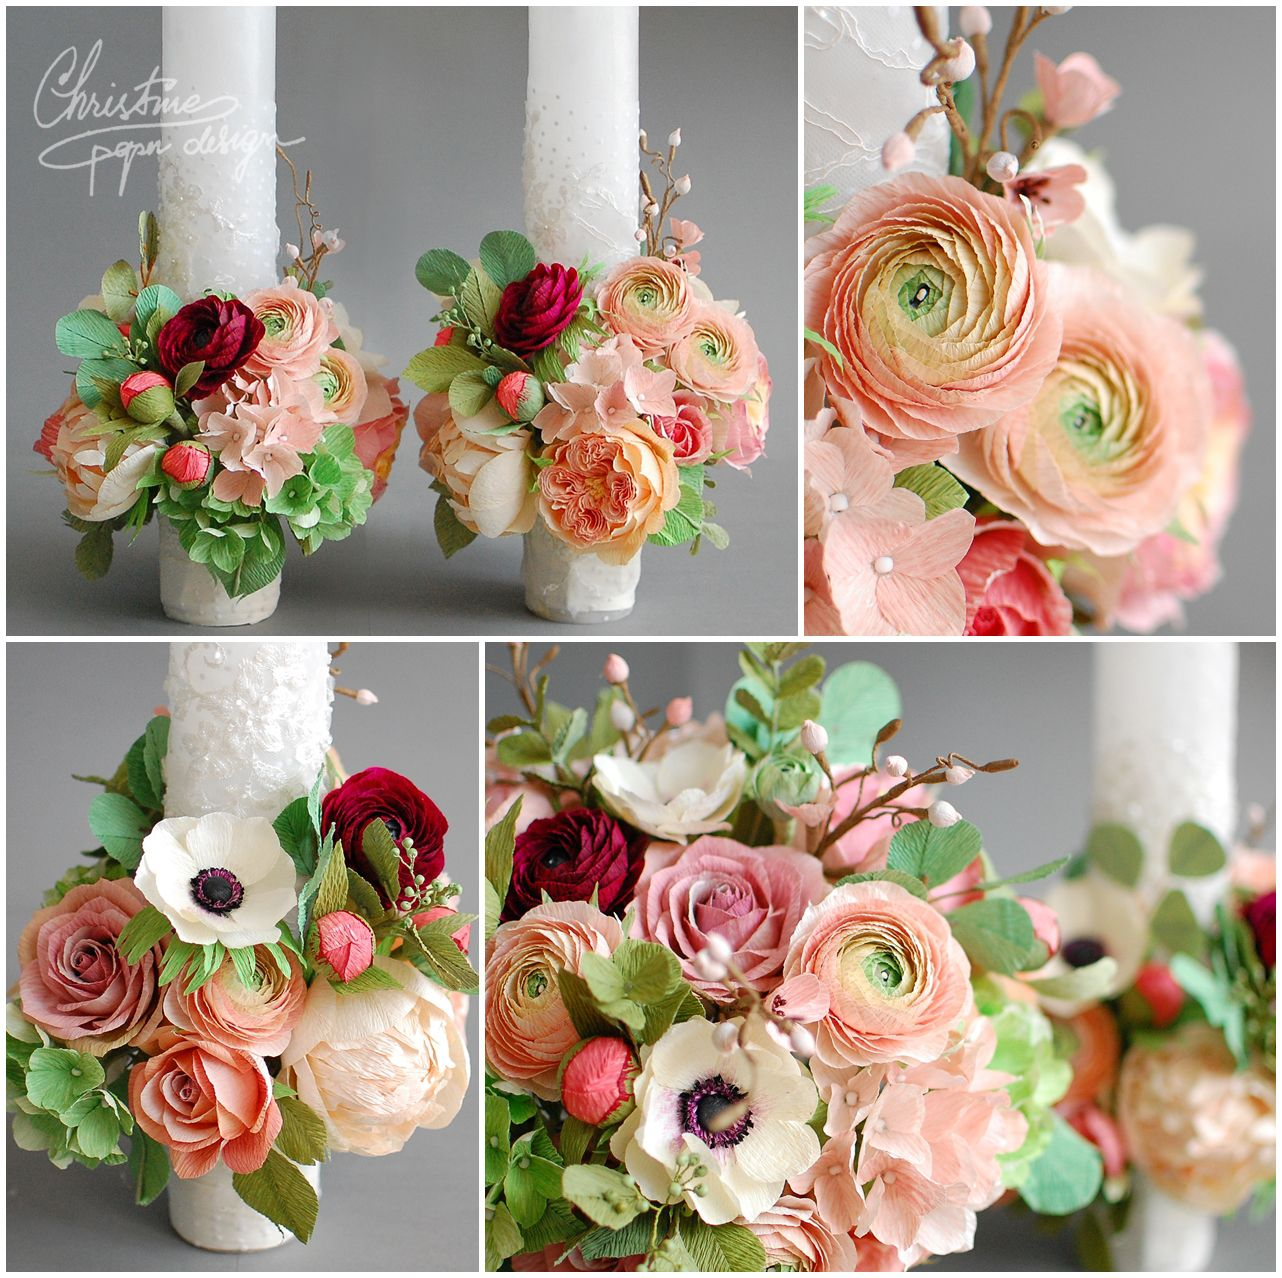 Paper Flower Bridal Bouquet Christine Paper Design 2 Arcade De